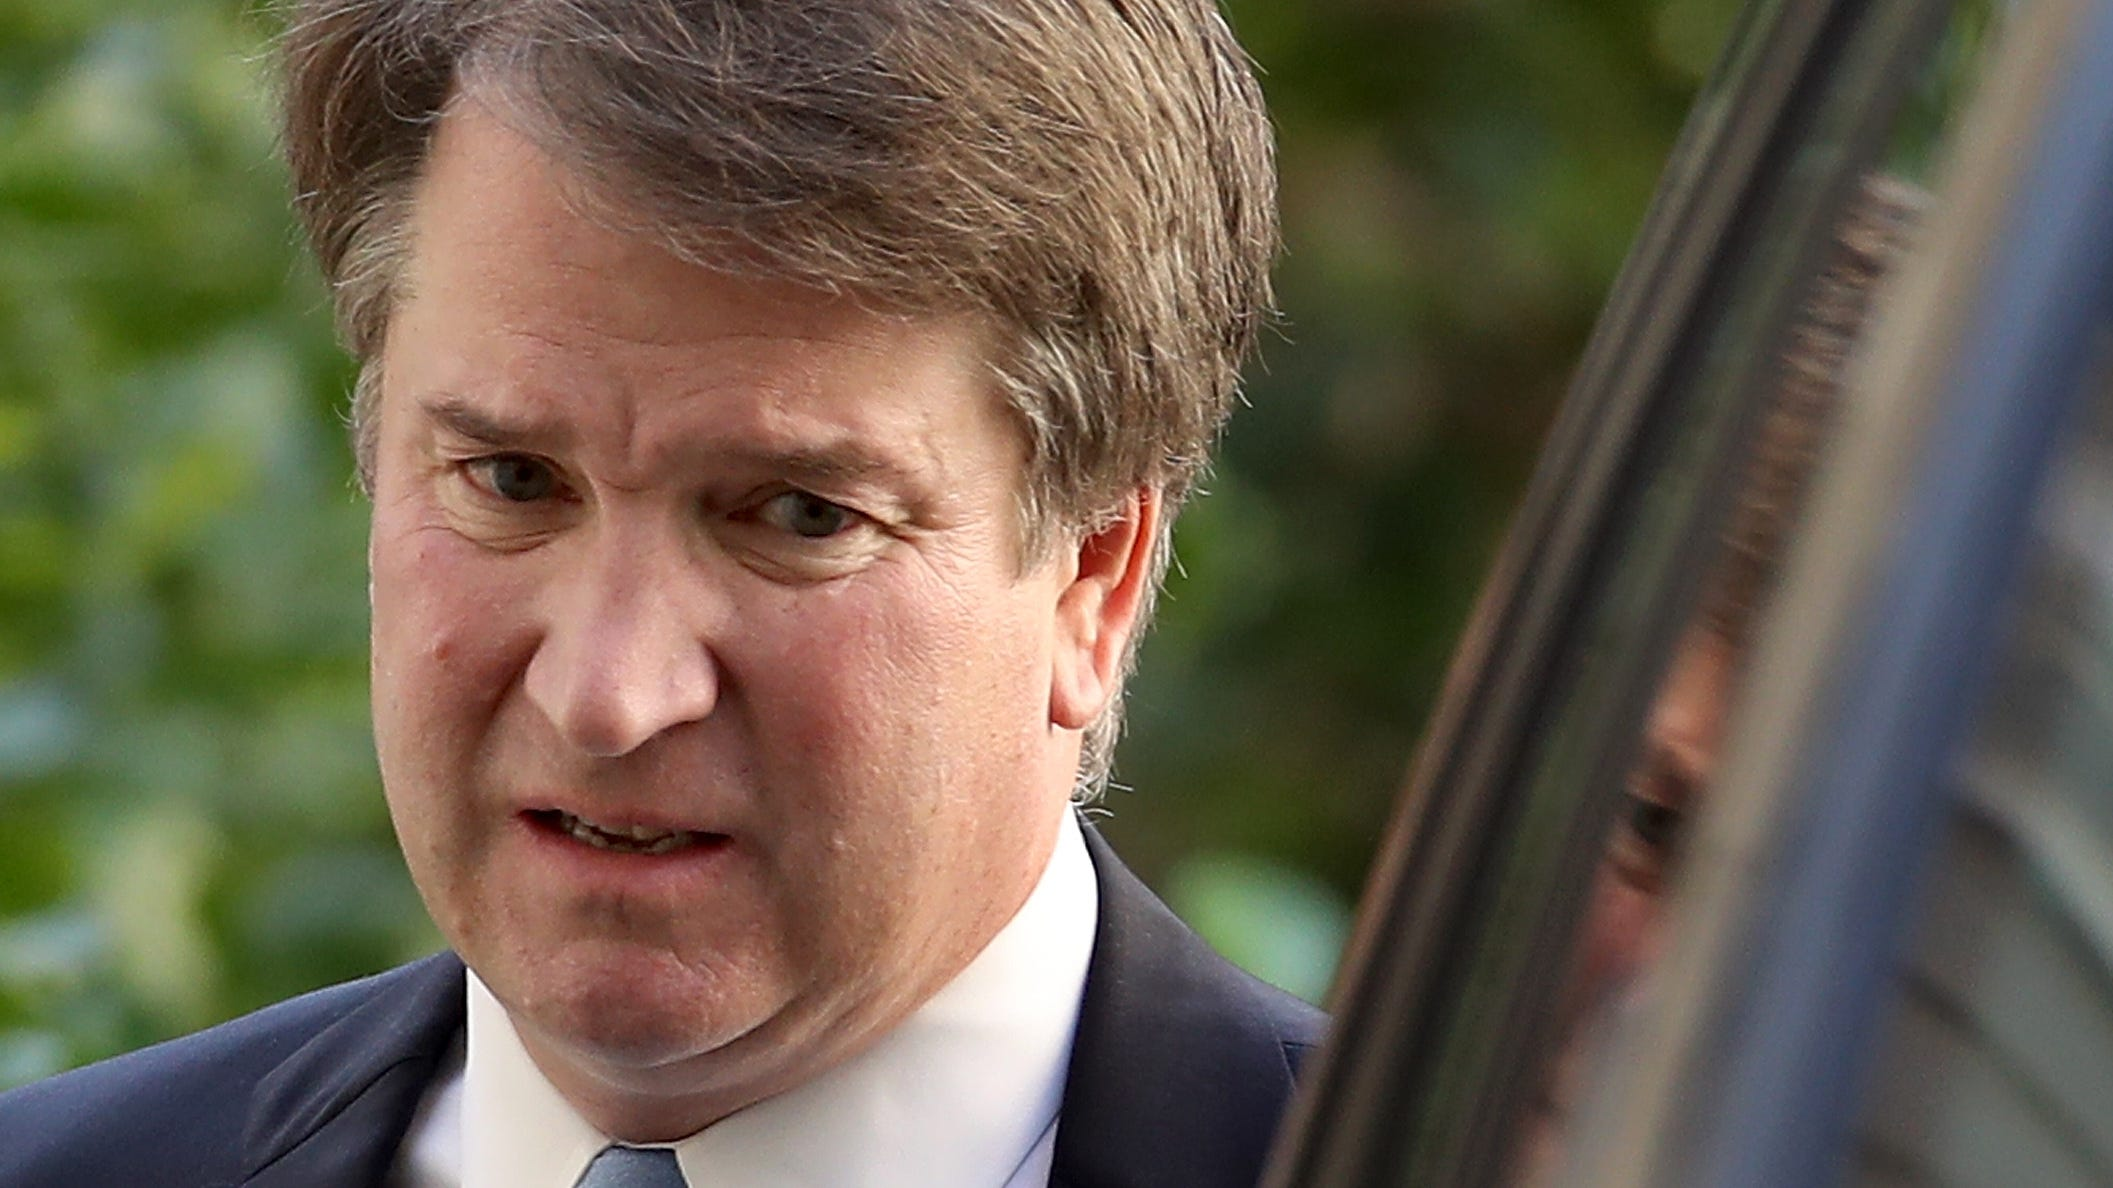 Supreme Court nominee Judge Brett Kavanaugh leaves his home September 19, 2018 in Chevy Chase, Maryland.